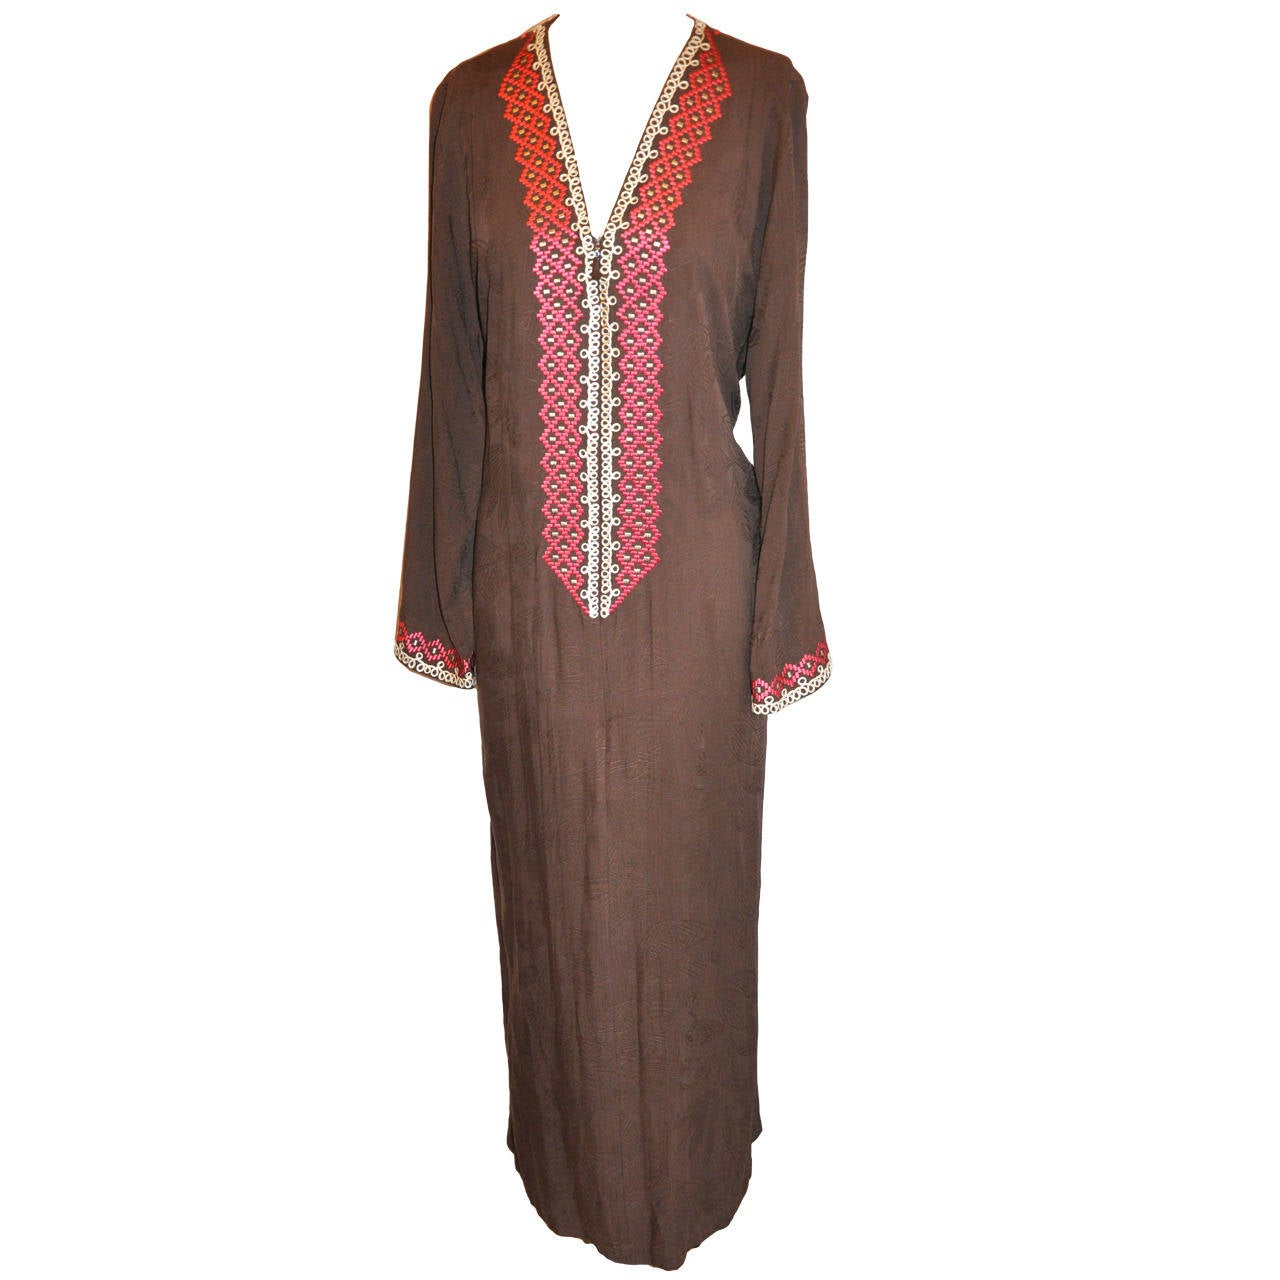 Oscar de la Renta Coco-Brown Silk Caftan with Hand Embroidered Detail